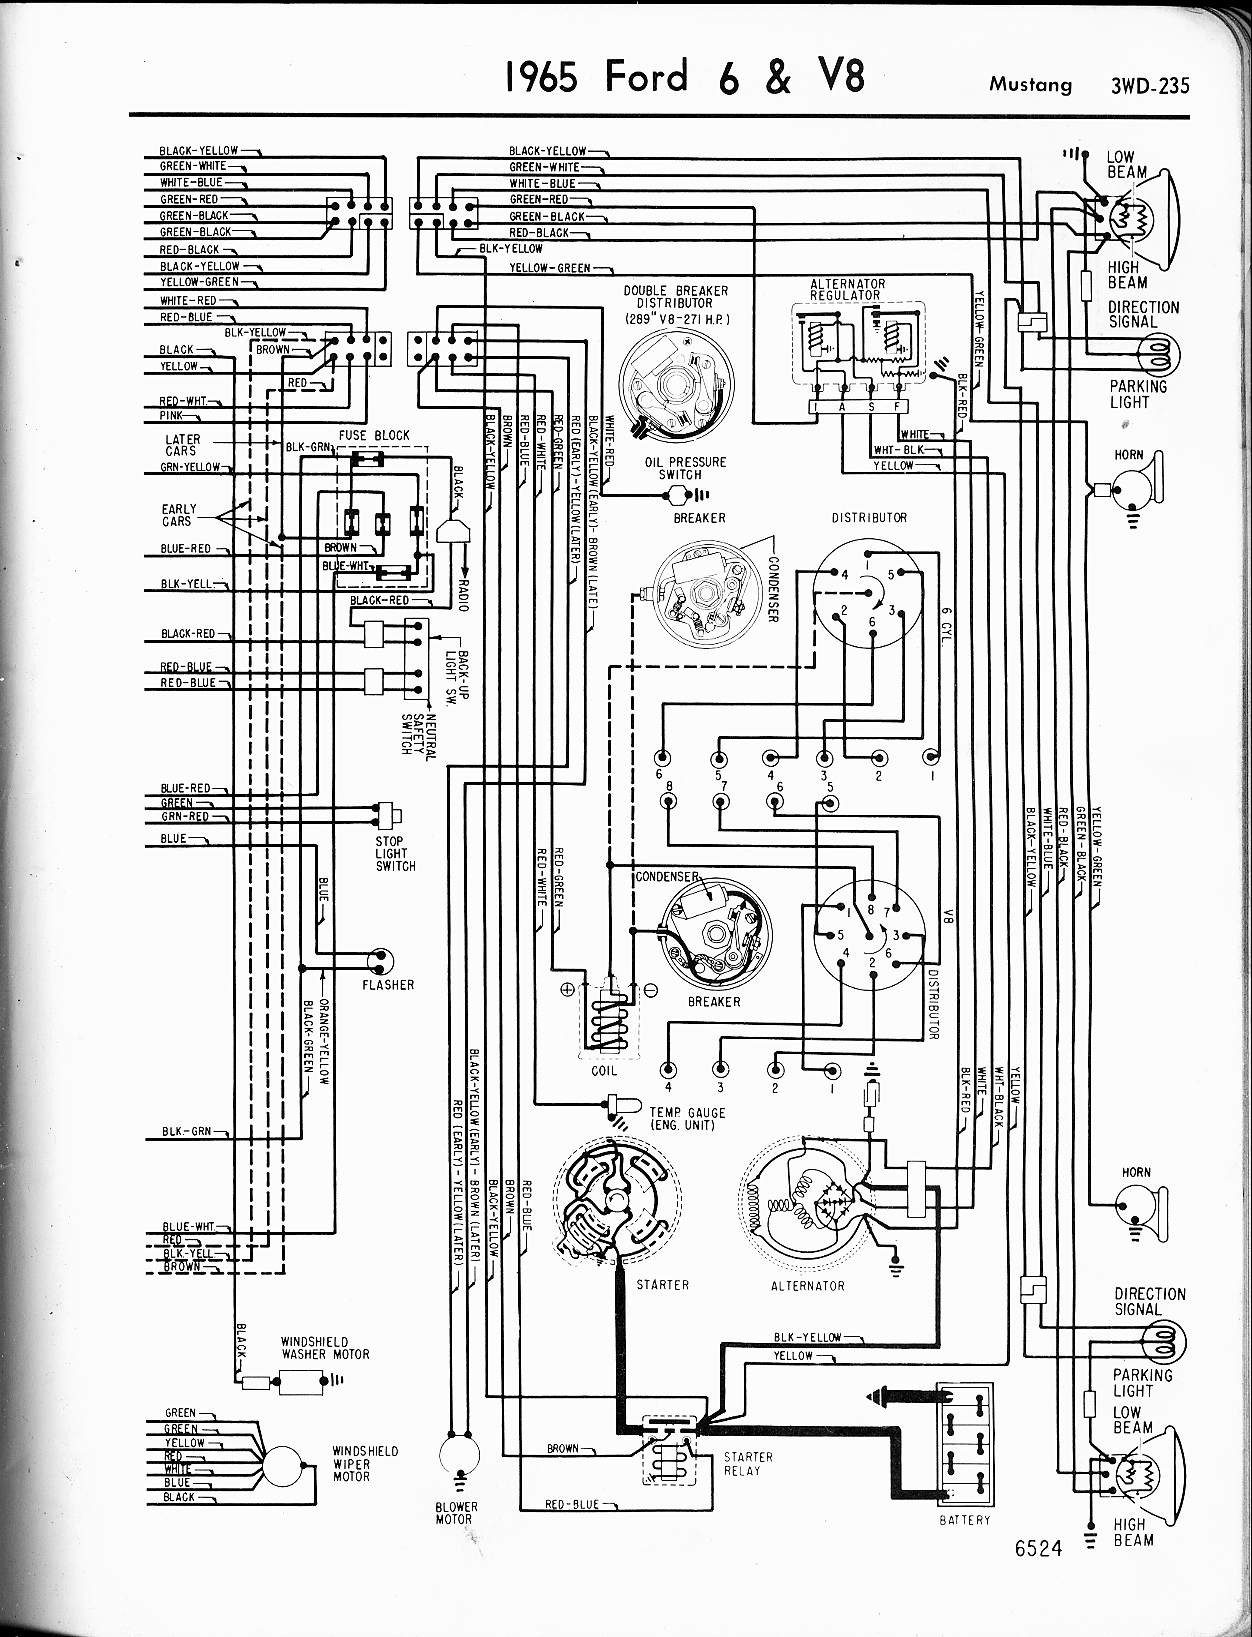 fuse layoutcar wiring diagram page 68